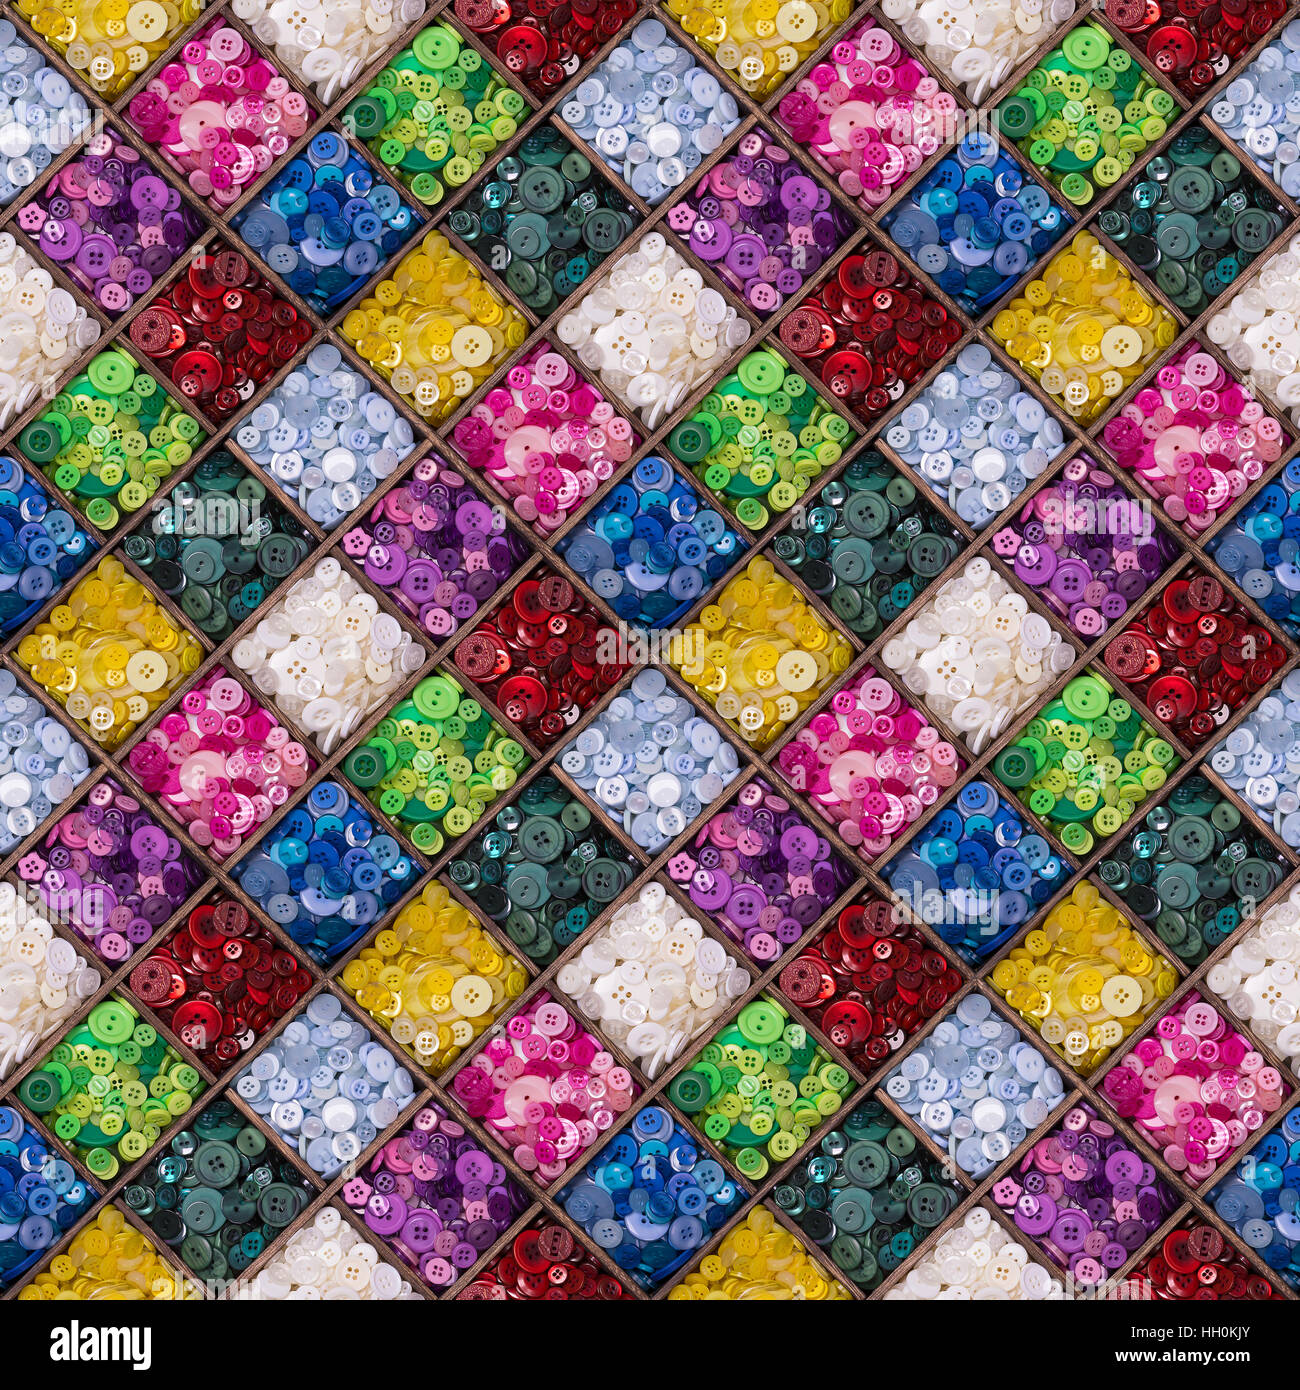 A seamless pattern of colourful buttons displayed in a wooden storage box. Tileable design suitable for wrapping - Stock Image